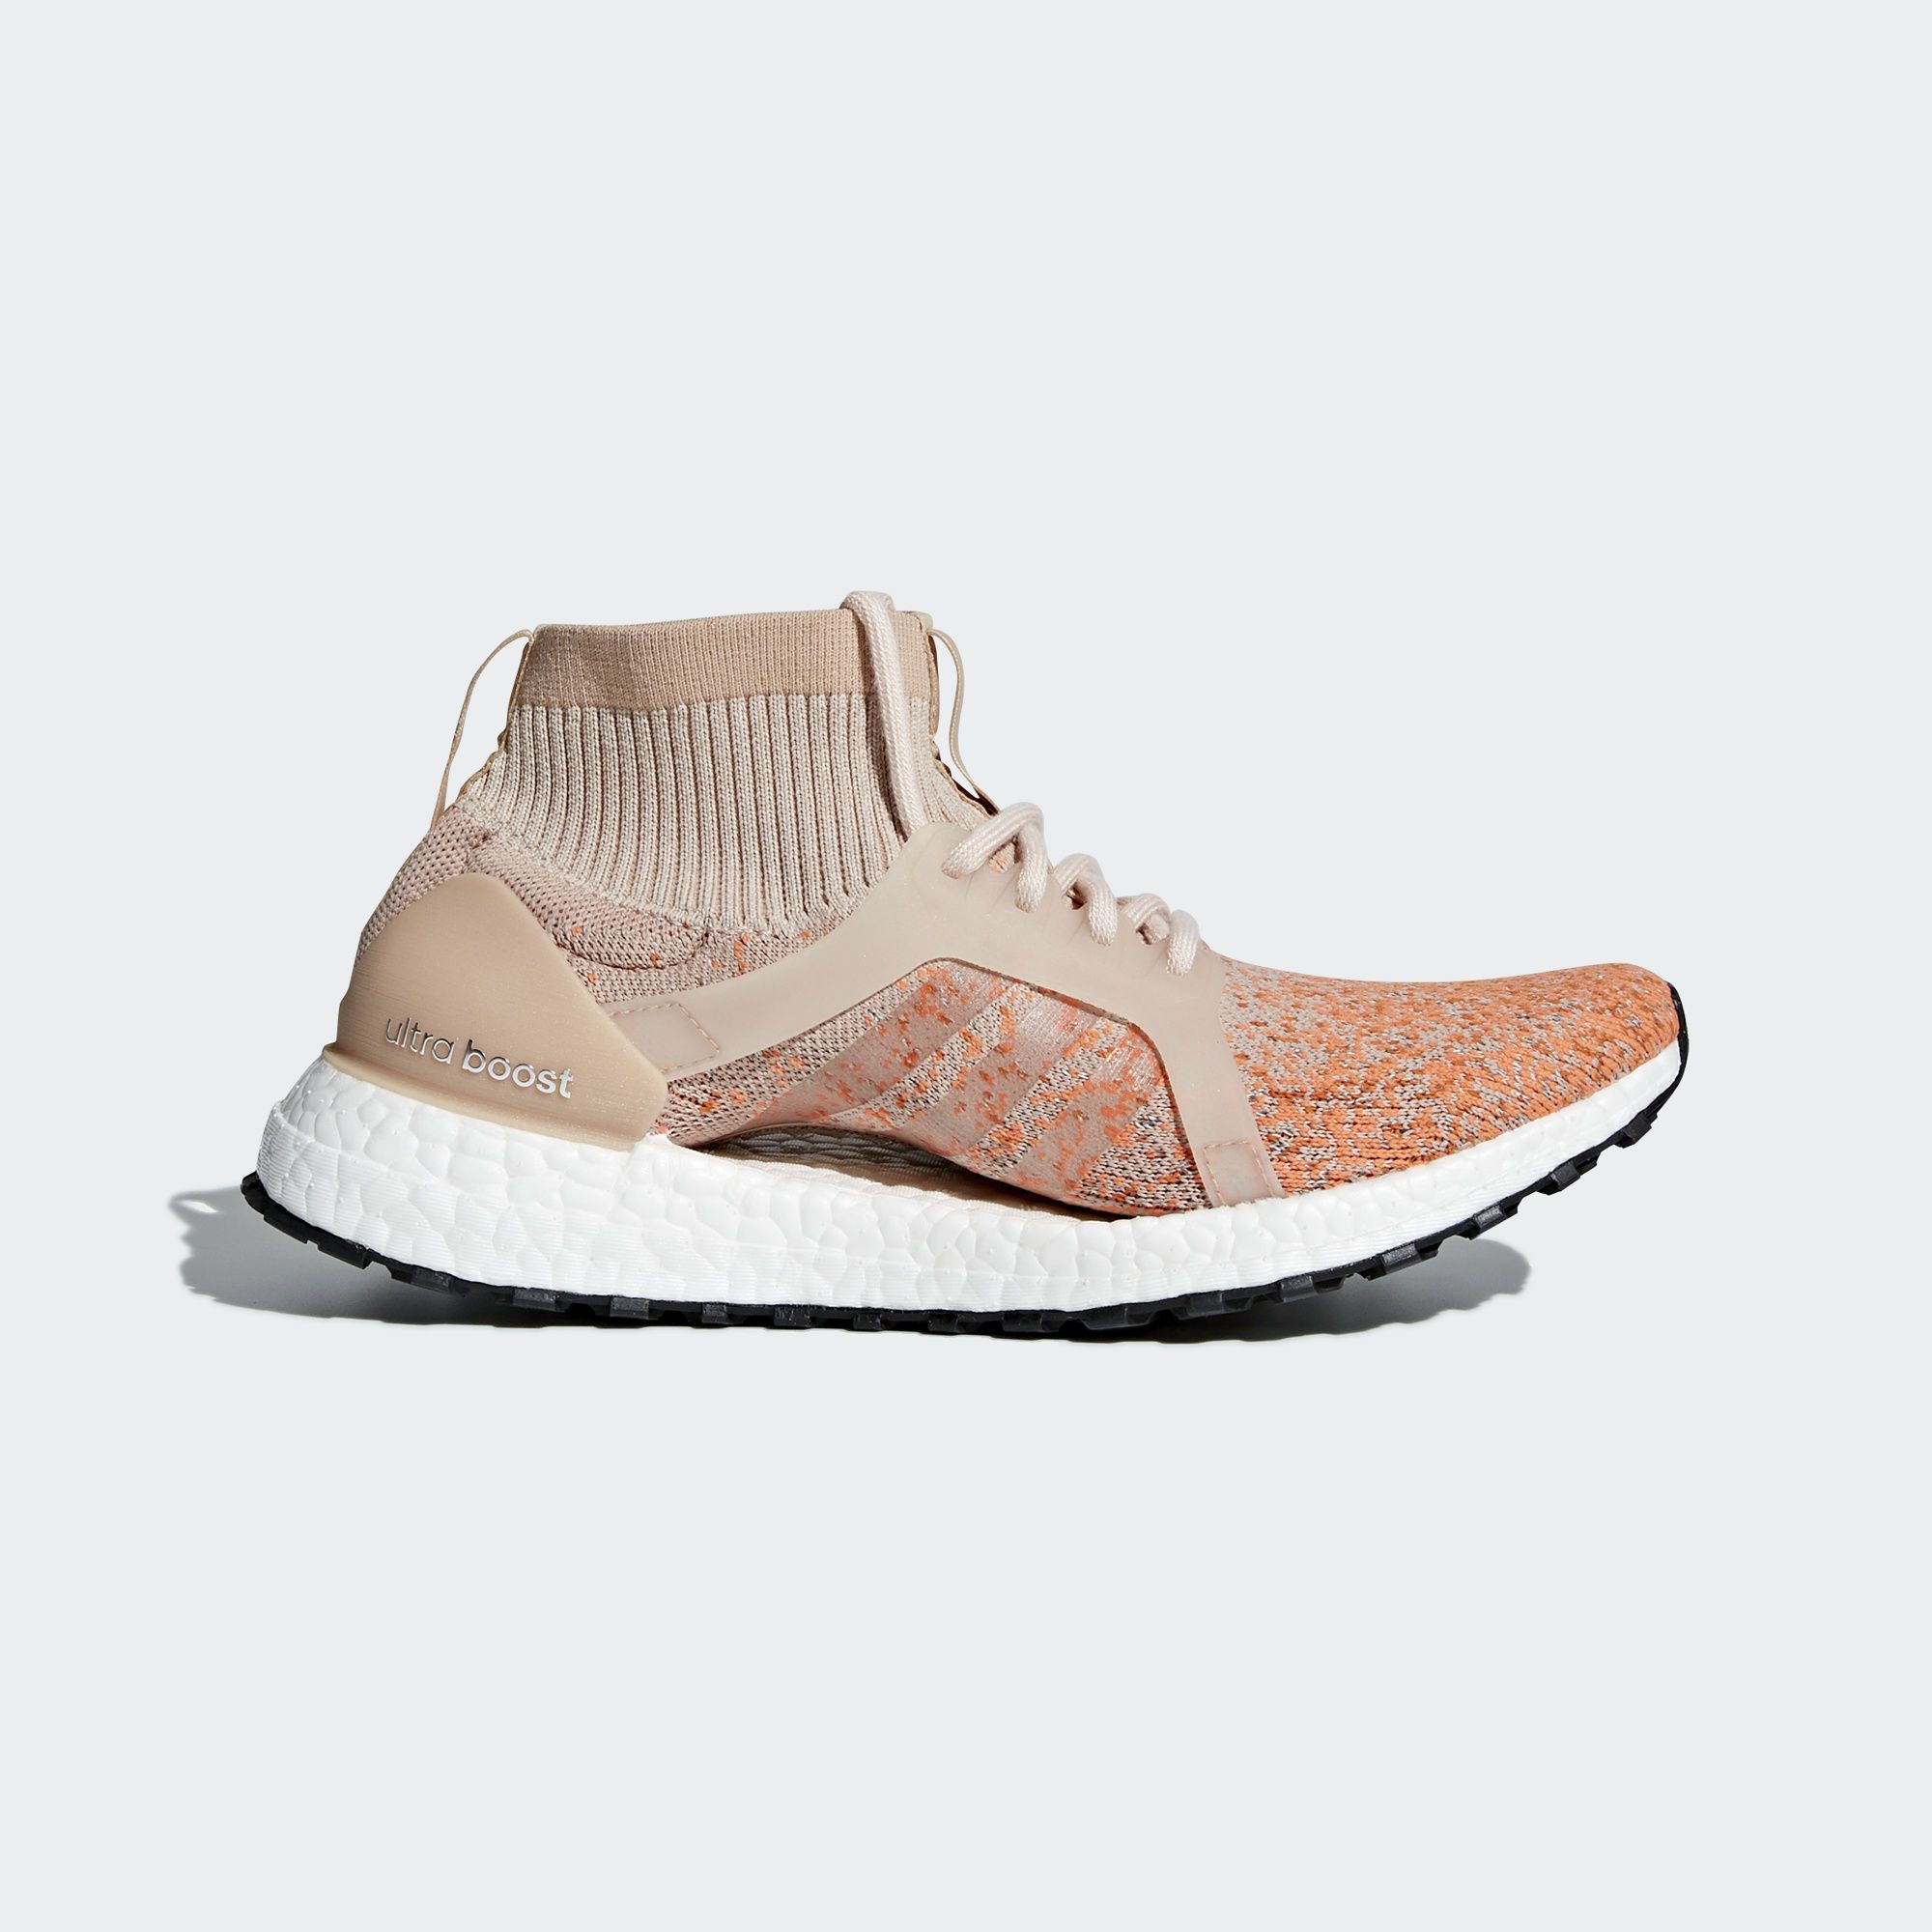 reputable site 91ca7 d8f2c These women s neutral running shoes are ready for anything. A  water-repellent adidas Primeknit upper protects in wet conditions, while  the high collar acts ...